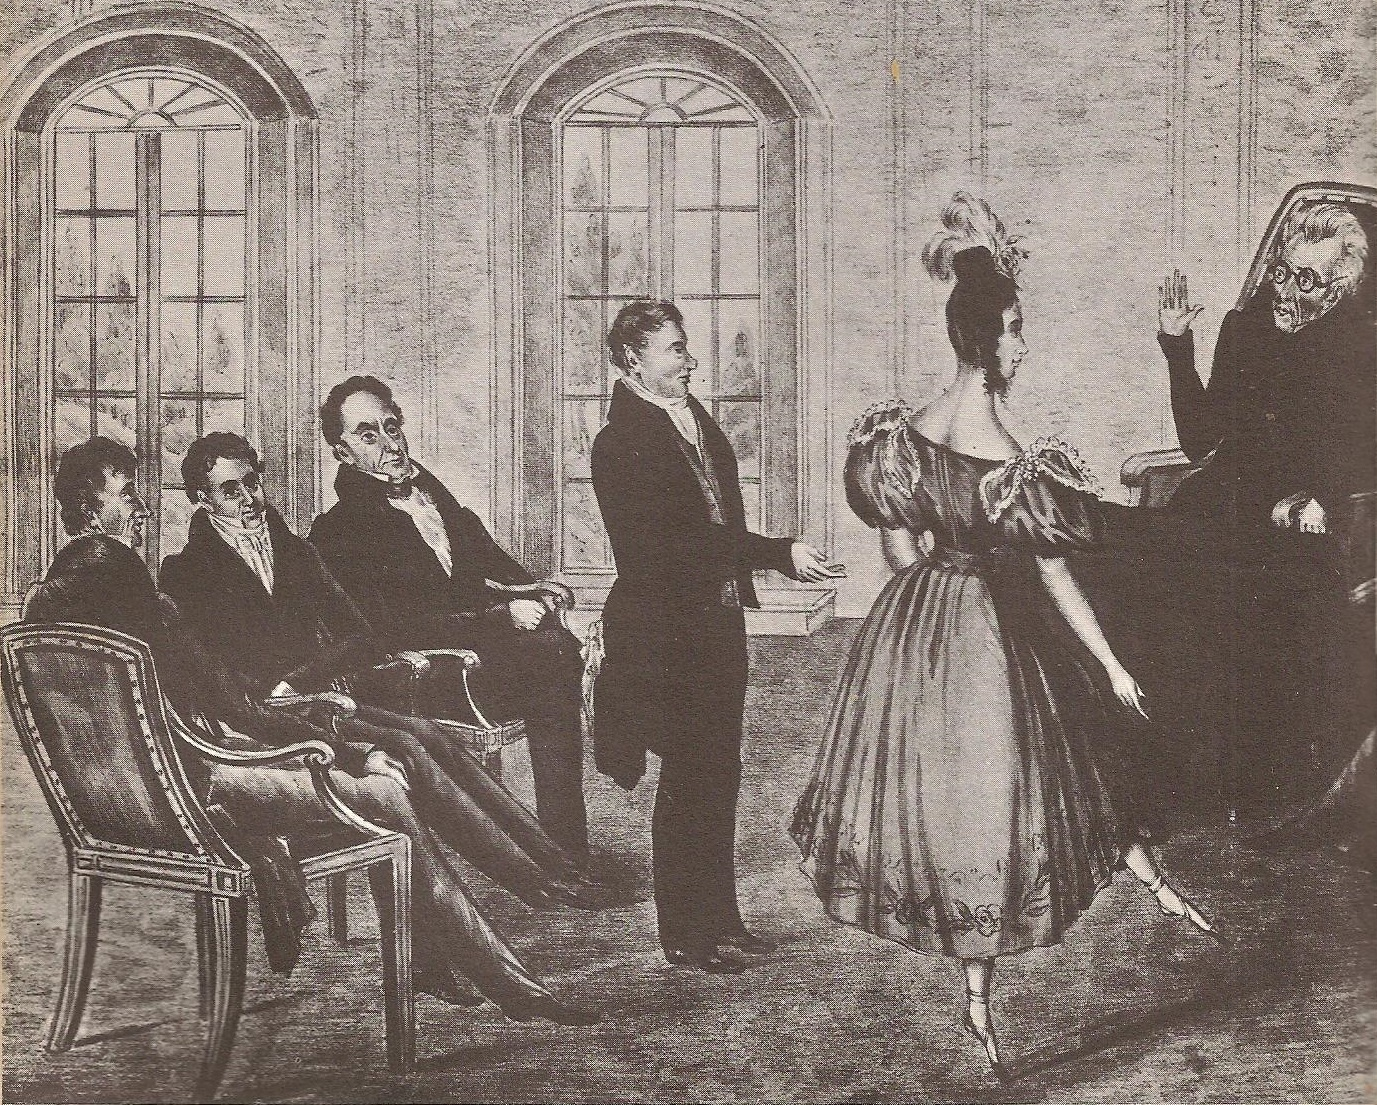 A political cartoon suggesting President Jackson's approval of Peggy Eaton, scandalously dancing and showing her ankles, at a Cabinet meeting. (New York Historical Society)